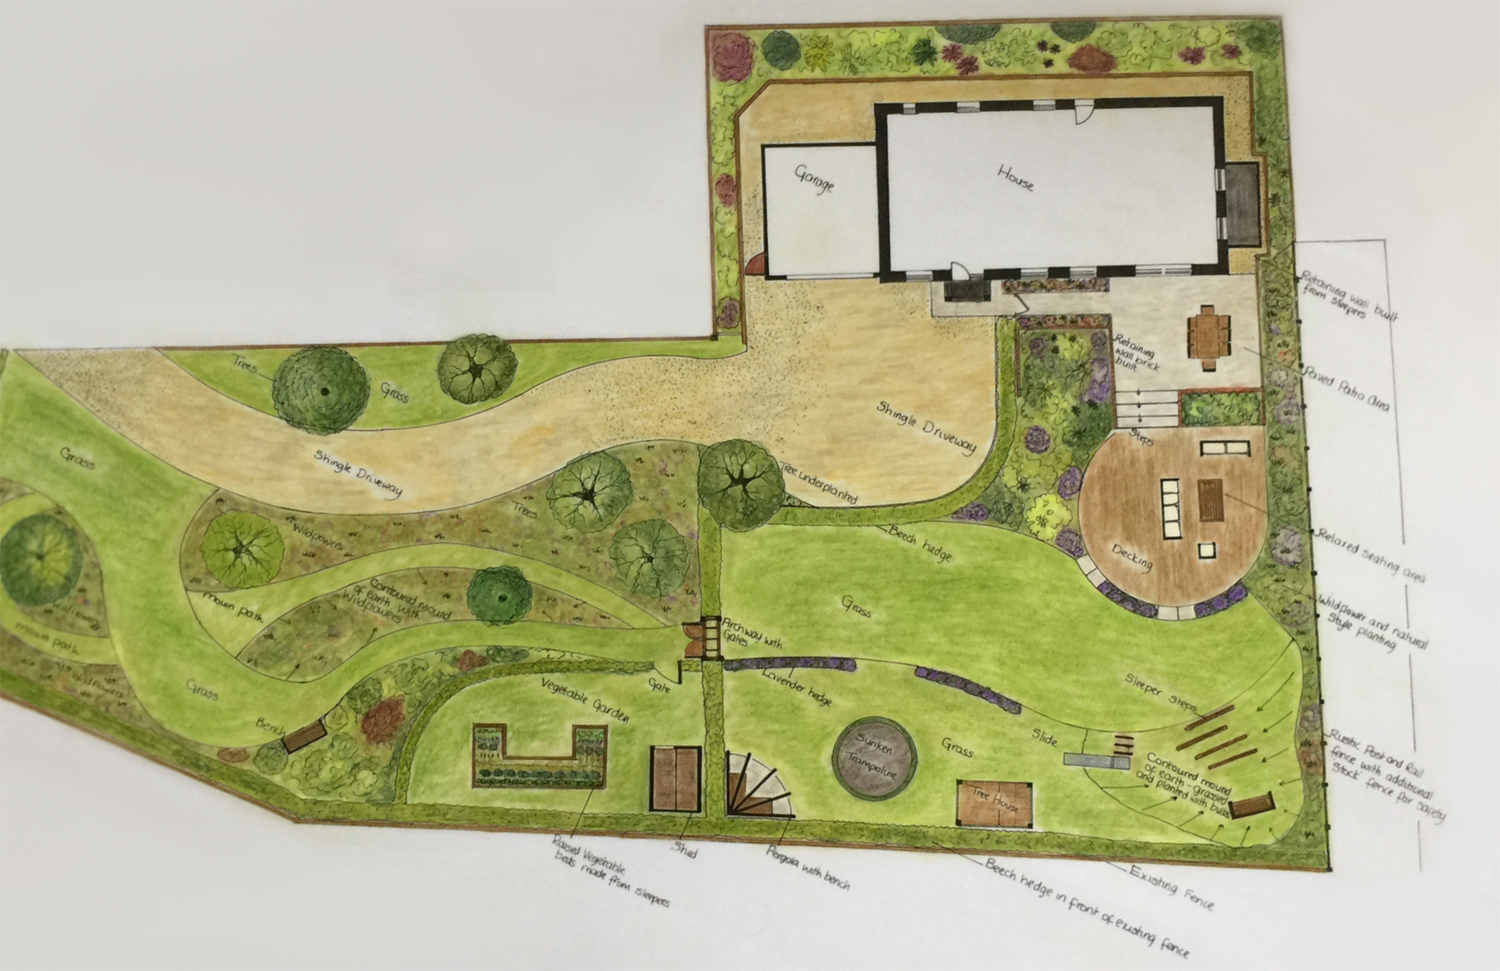 Hph219 Why Landscaping Plans Always Get Put On Hold With Ben Adam Smith House Planning Help